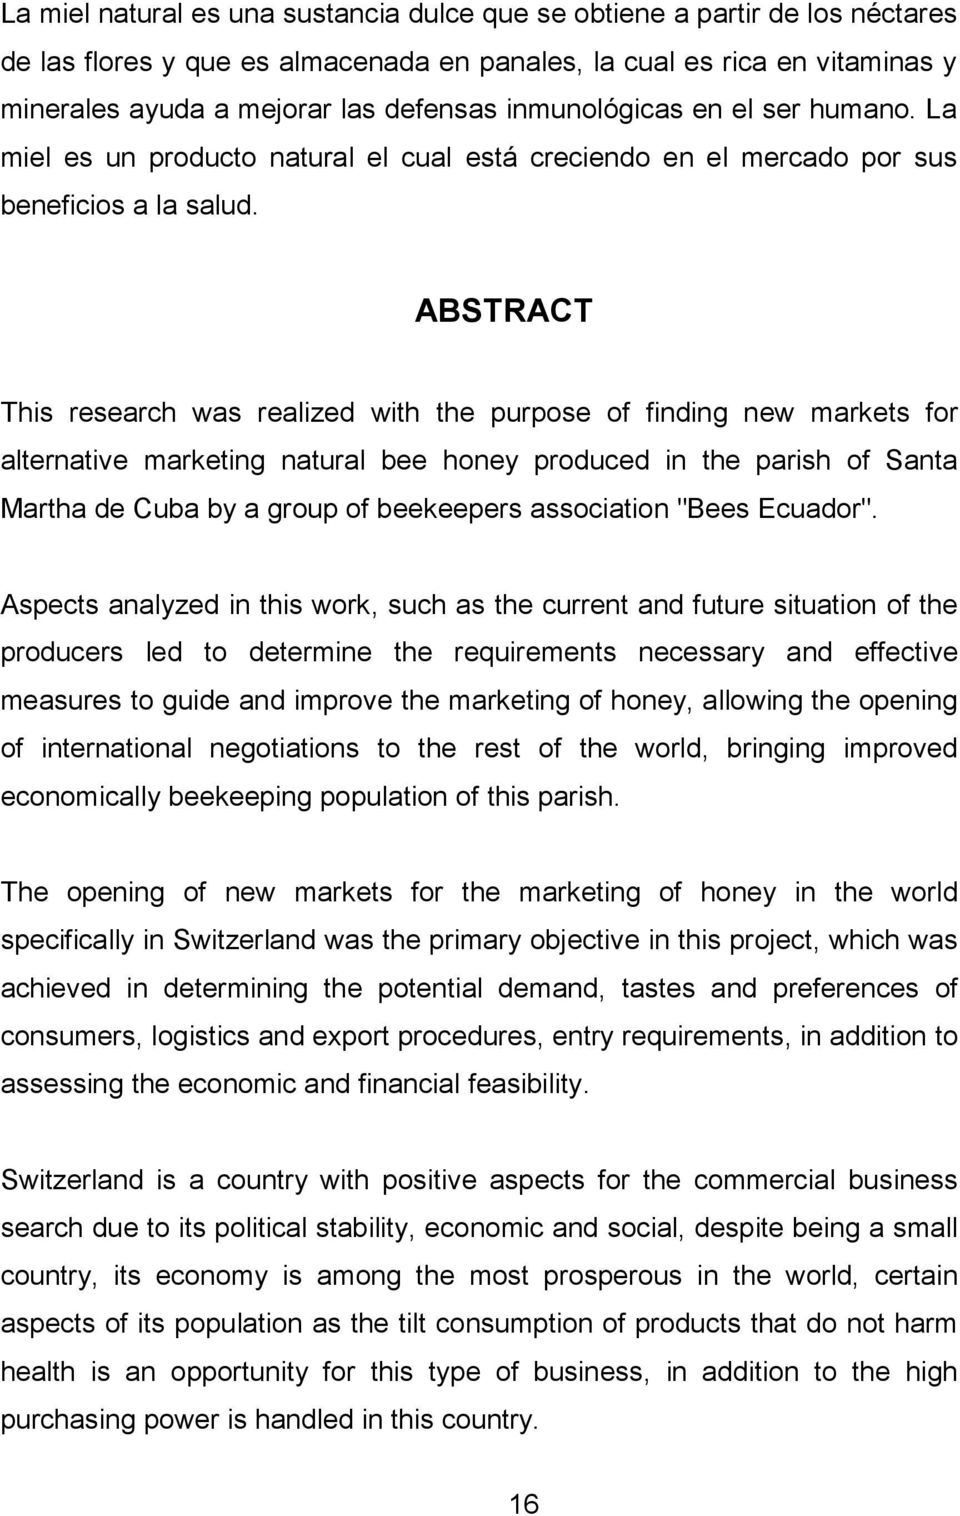 ABSTRACT This research was realized with the purpose of finding new markets for alternative marketing natural bee honey produced in the parish of Santa Martha de Cuba by a group of beekeepers